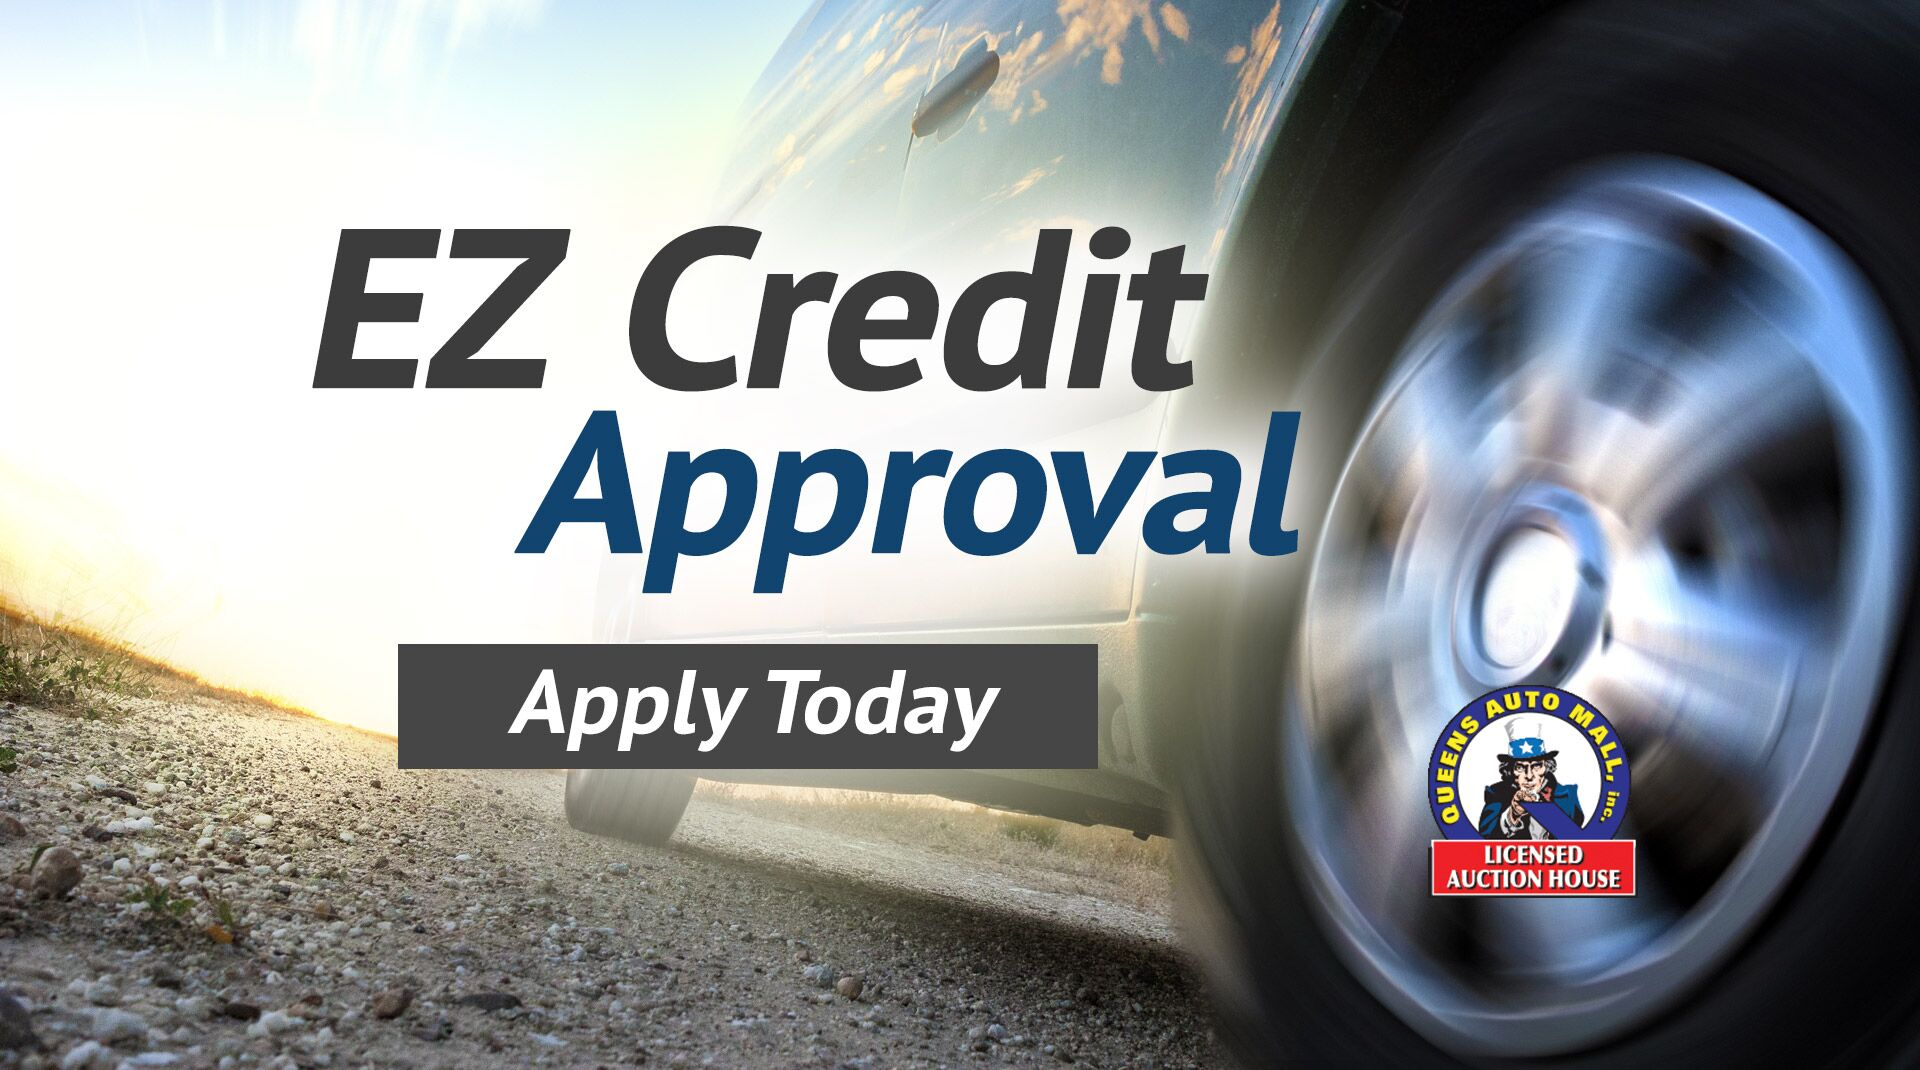 EZ Credit Approval